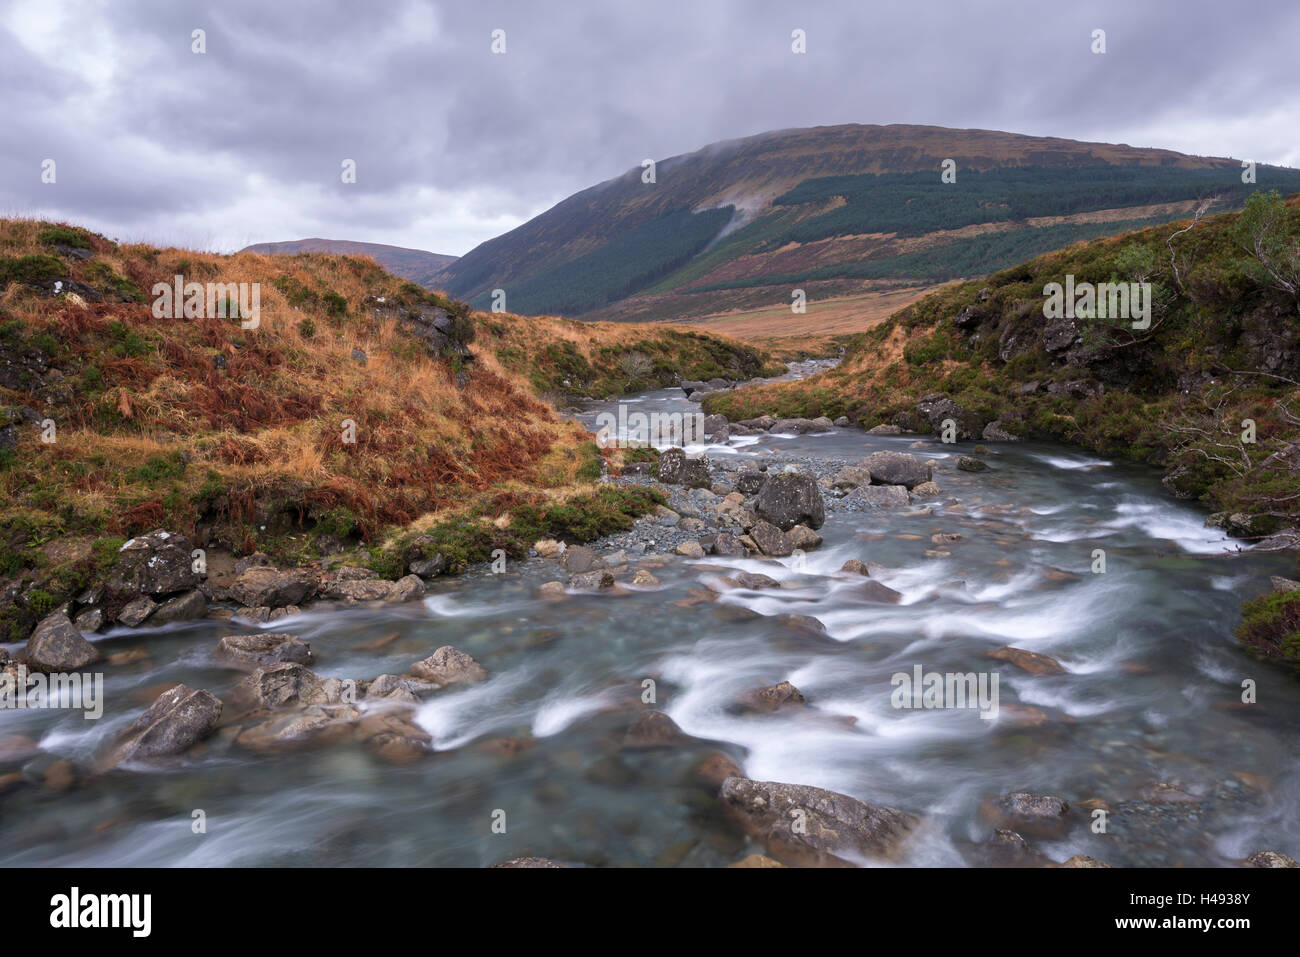 River Brittle running through the Fairy Pools in Glen Brittle on the Isle of Skye, Scotland. Winter (December) 2013. - Stock Image